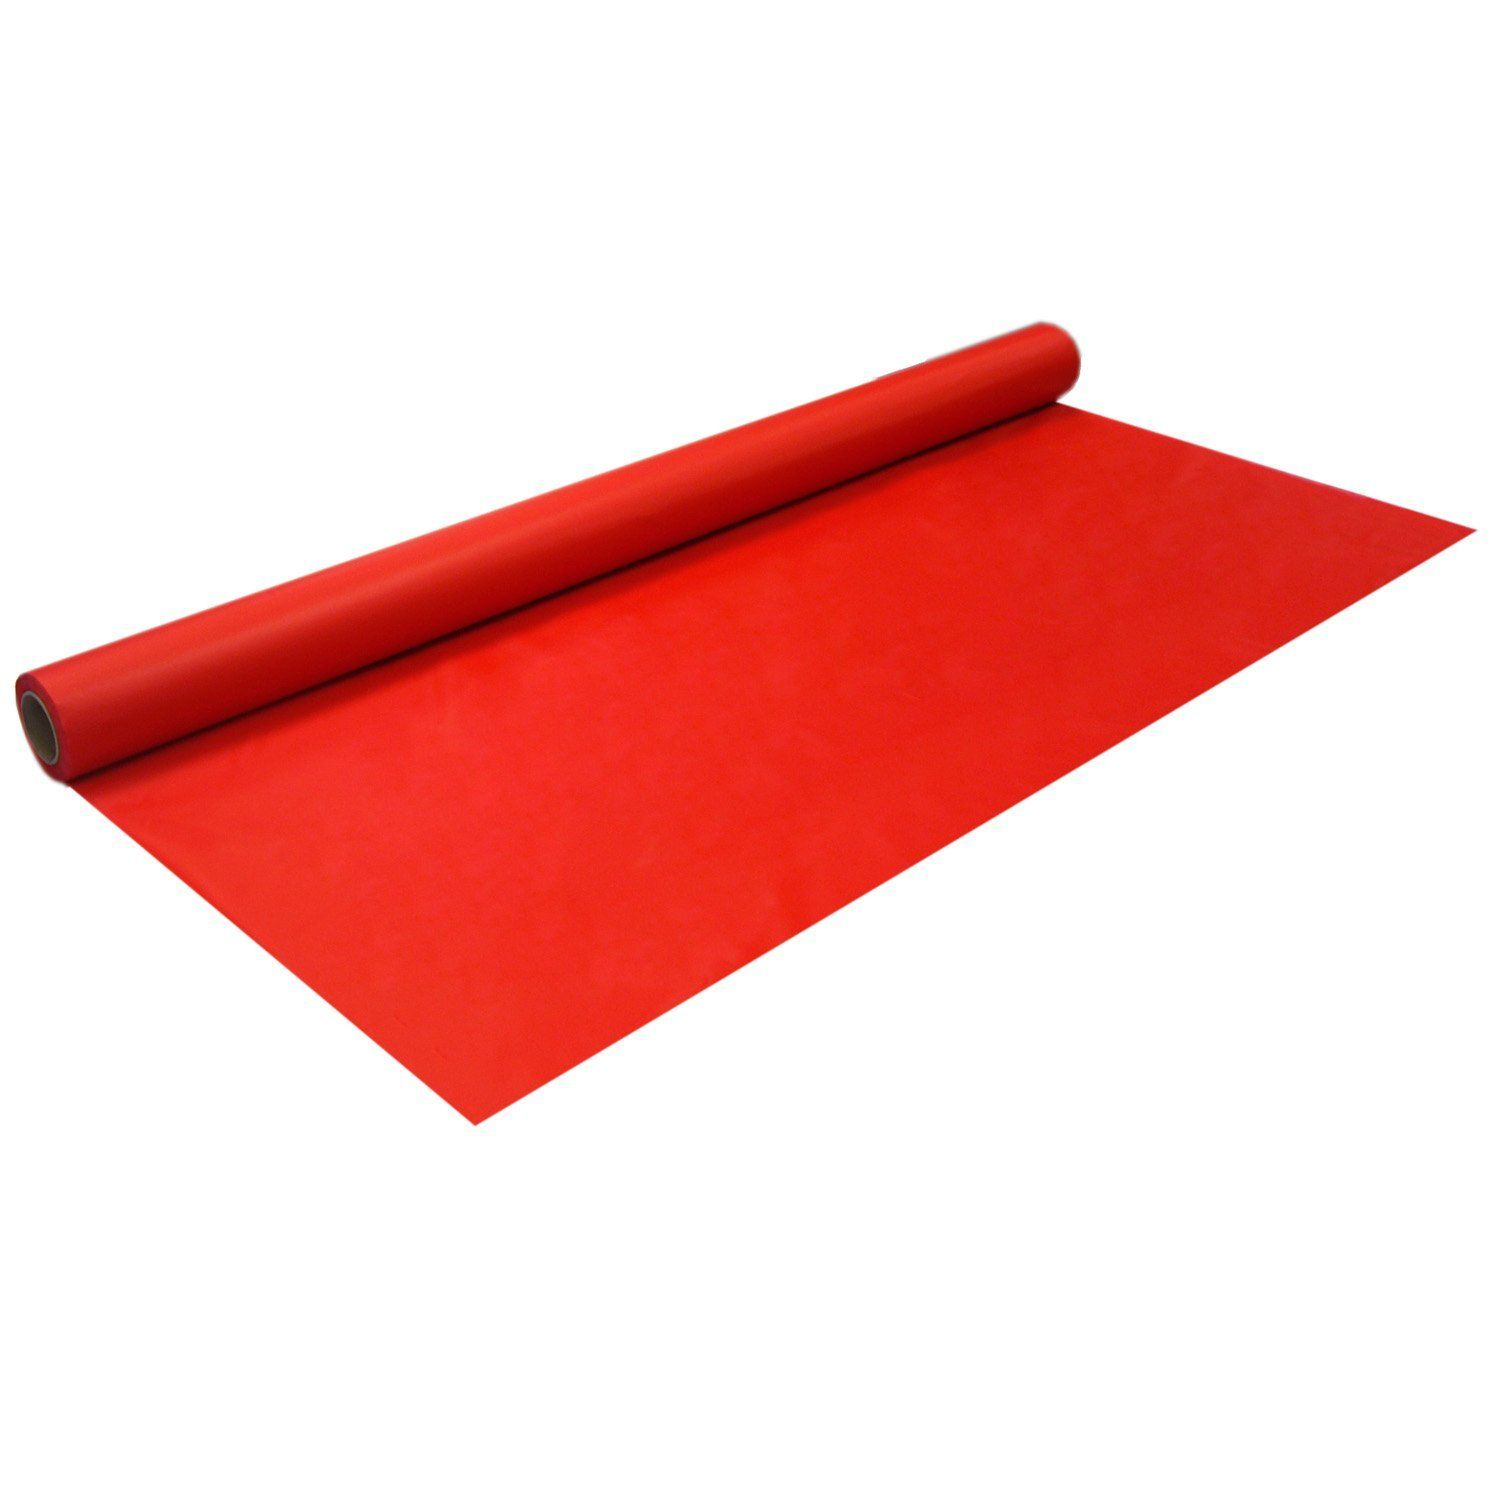 Black Lodge Cheap Red Walls Creative Converting Touch Of Color Banquet Roll Plastic Table Cover Banquet Tables Christmas Party Supplies Party Essential